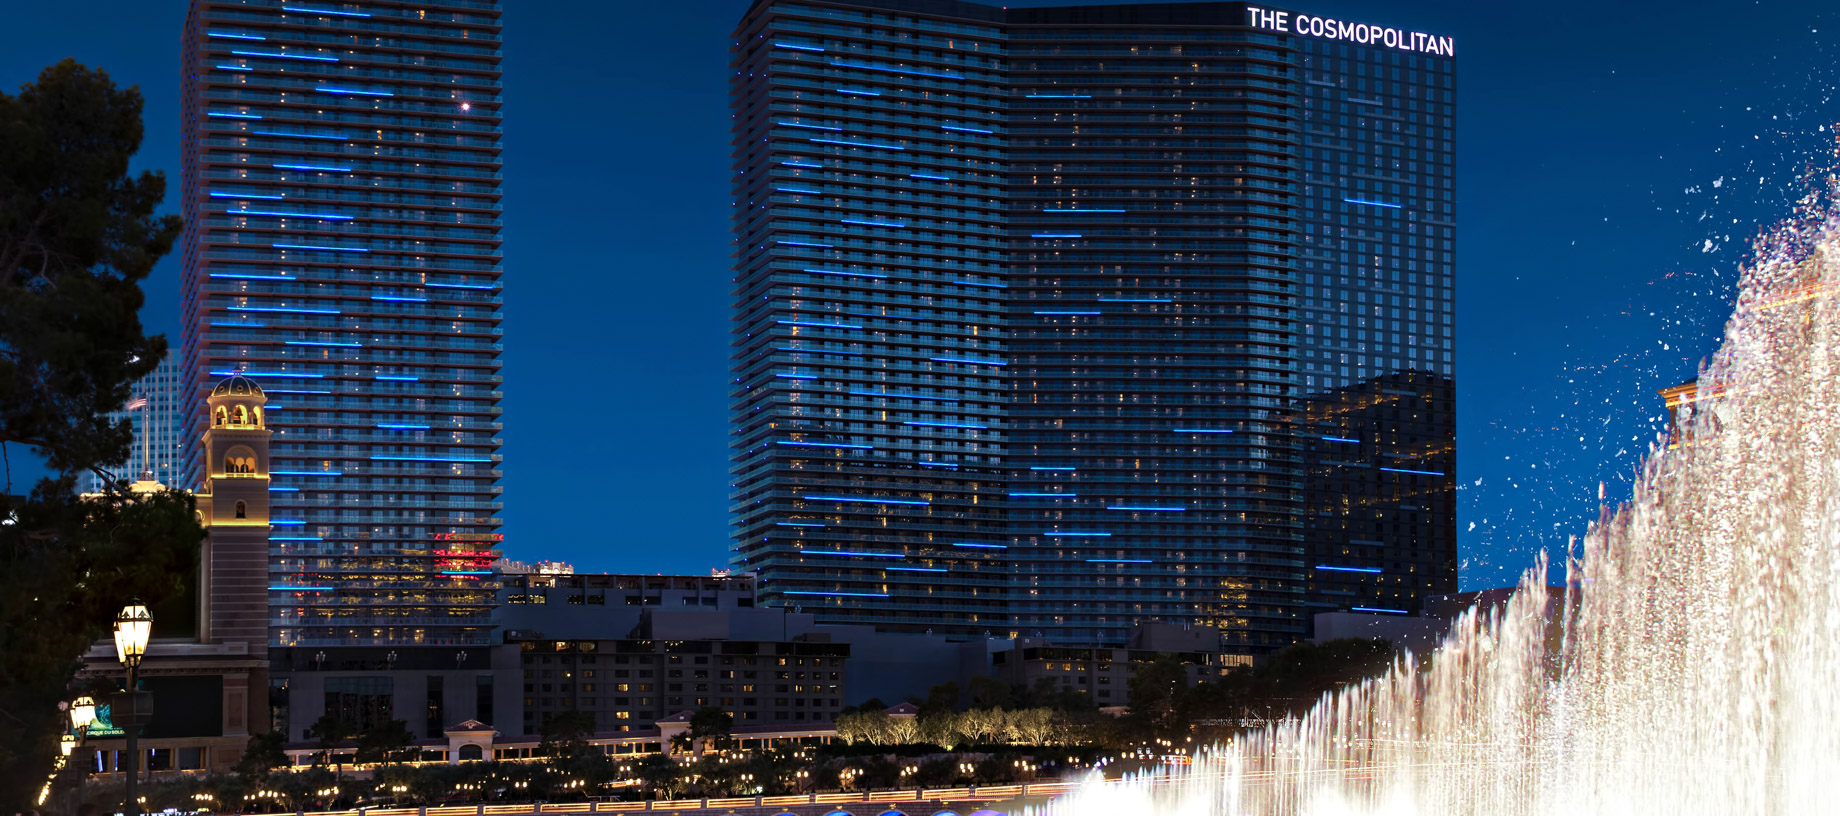 The Cosmopolitan Las Vegas – Billion Dollar Buildings – The Most Expensive Casino Properties in the World